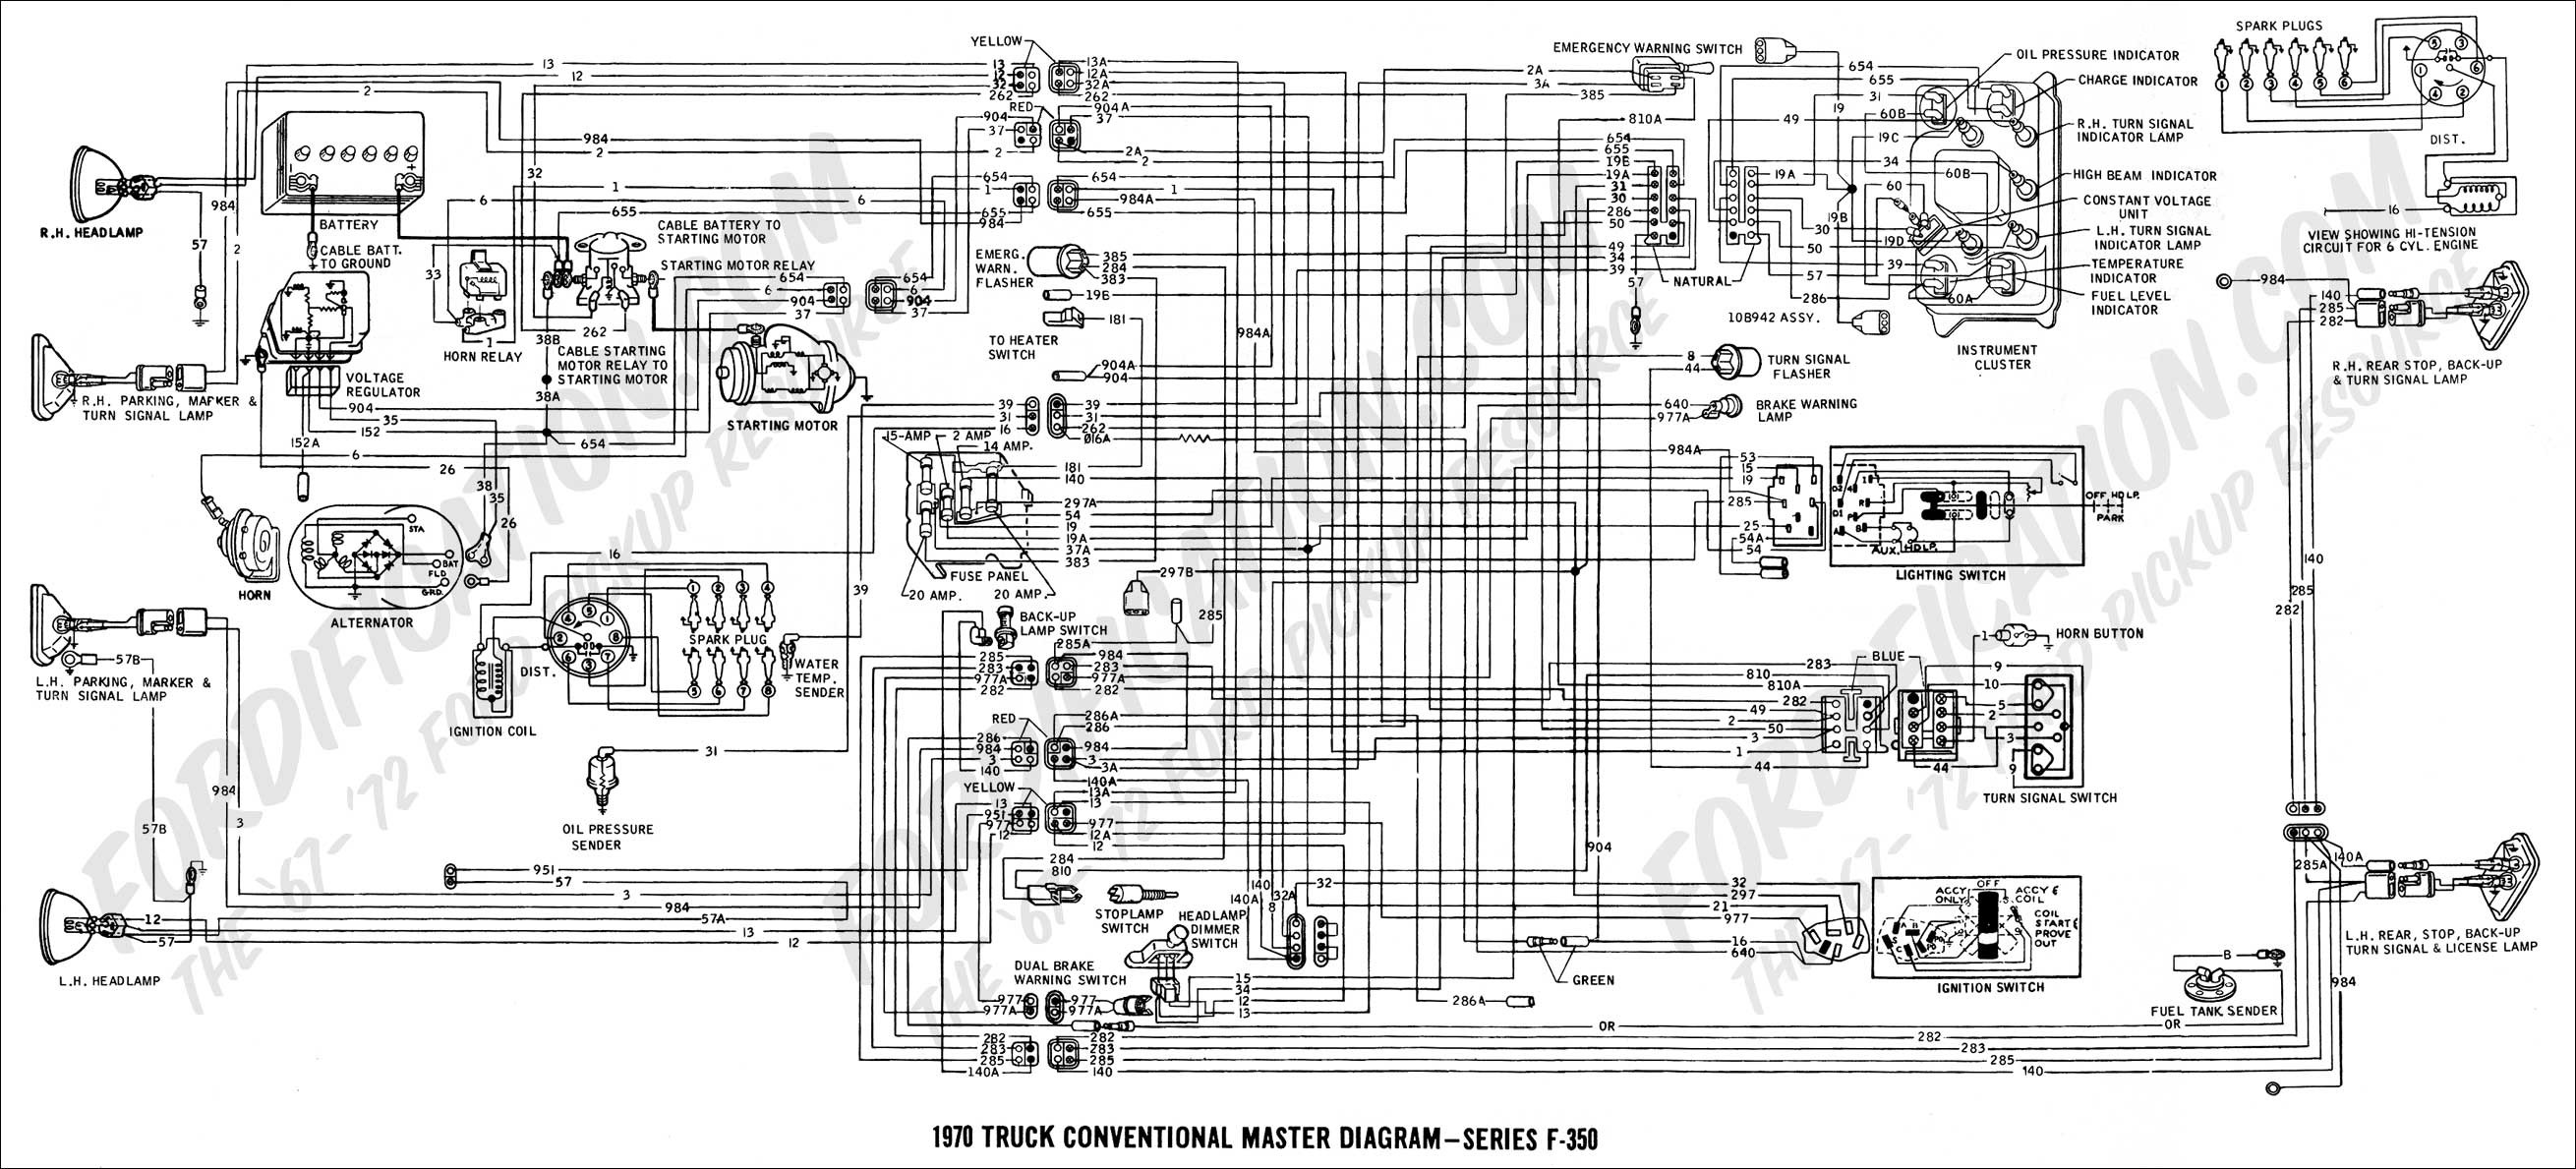 2004 toyota Camry Engine Diagram Diagram as Well ford F 350 Wiring Diagram  In Addition ford